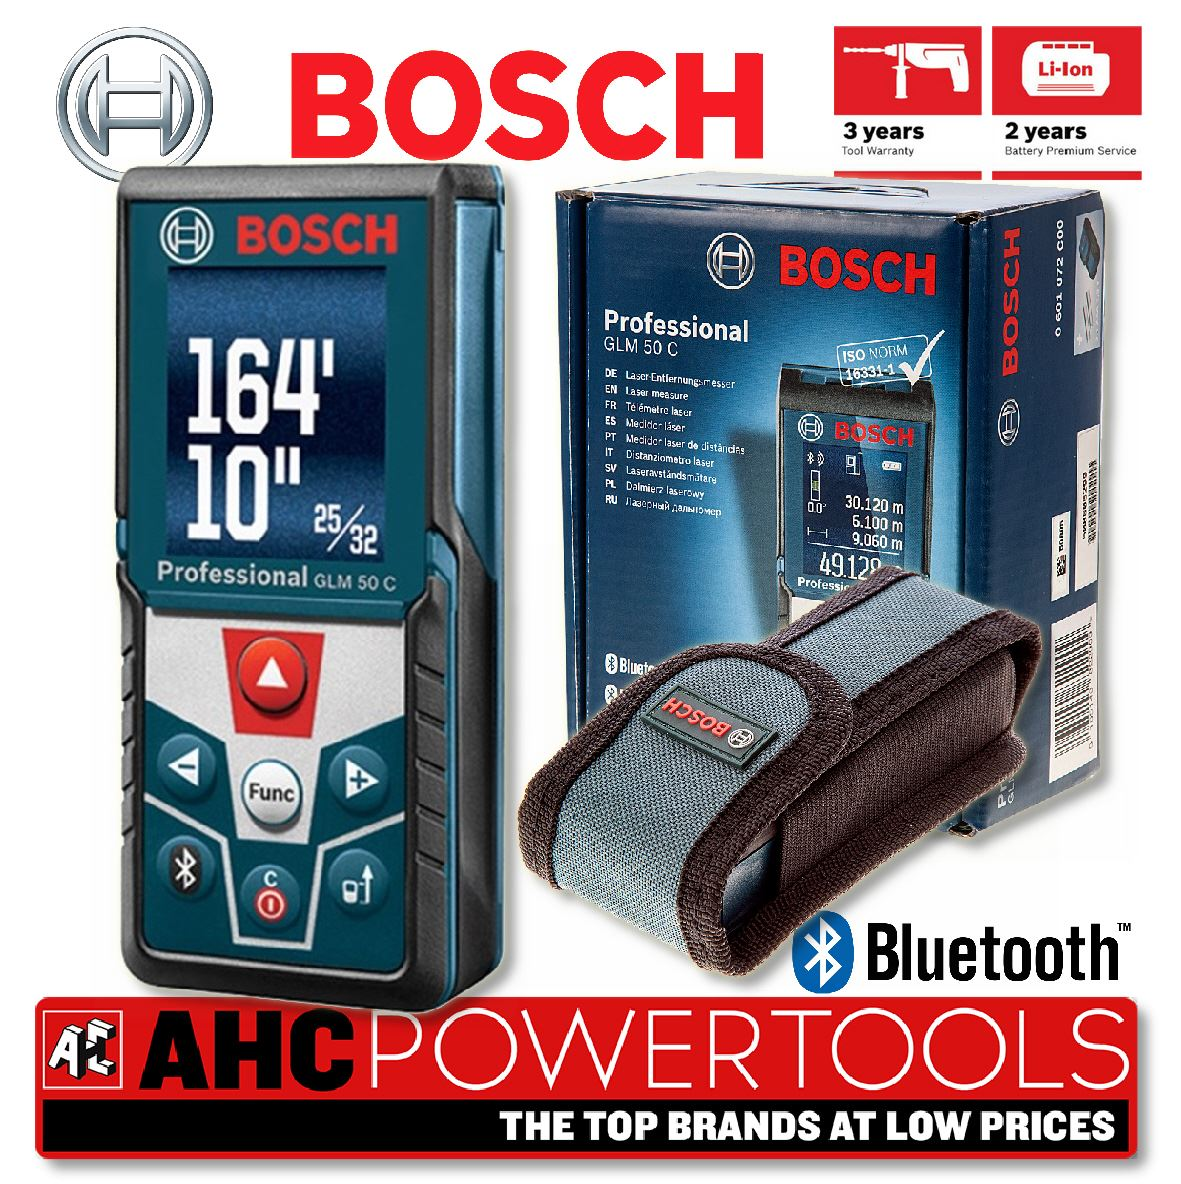 bosch glm 50 c professional bluetooth laser distance measure range finder ebay. Black Bedroom Furniture Sets. Home Design Ideas